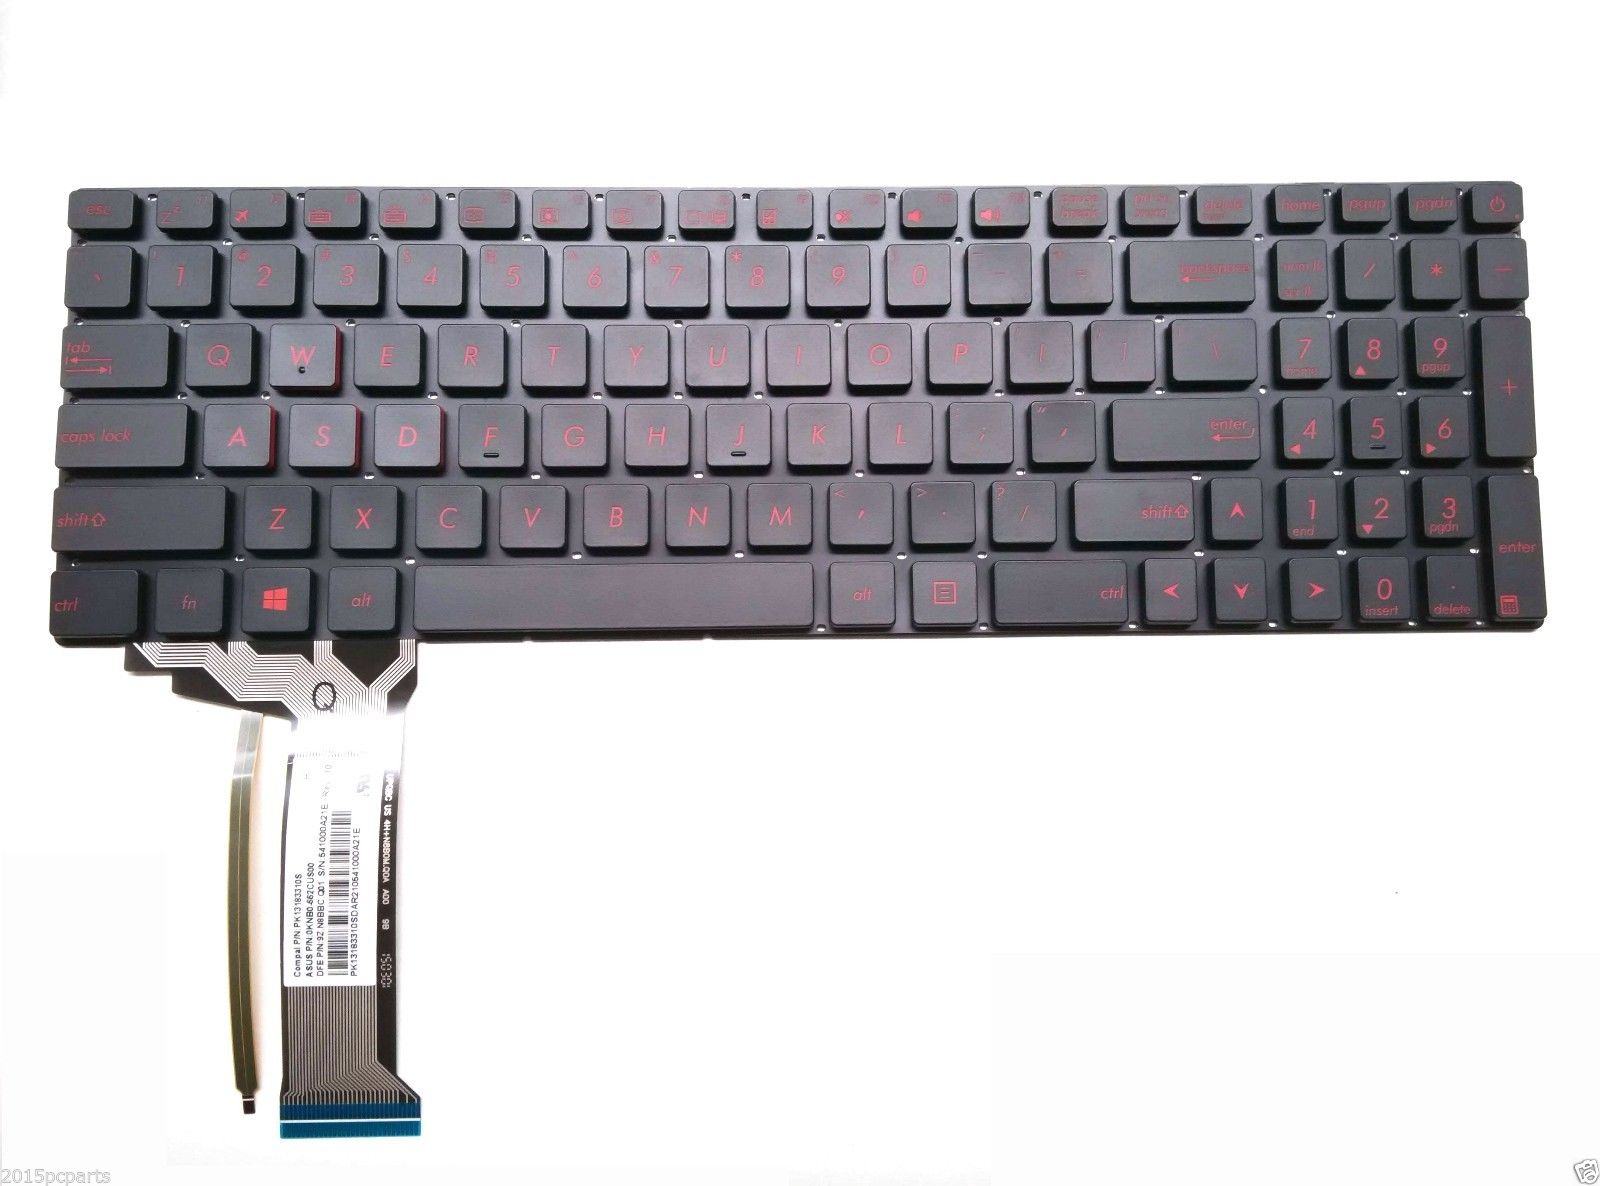 US keyboard for Asus ROG GL752VW-DH71